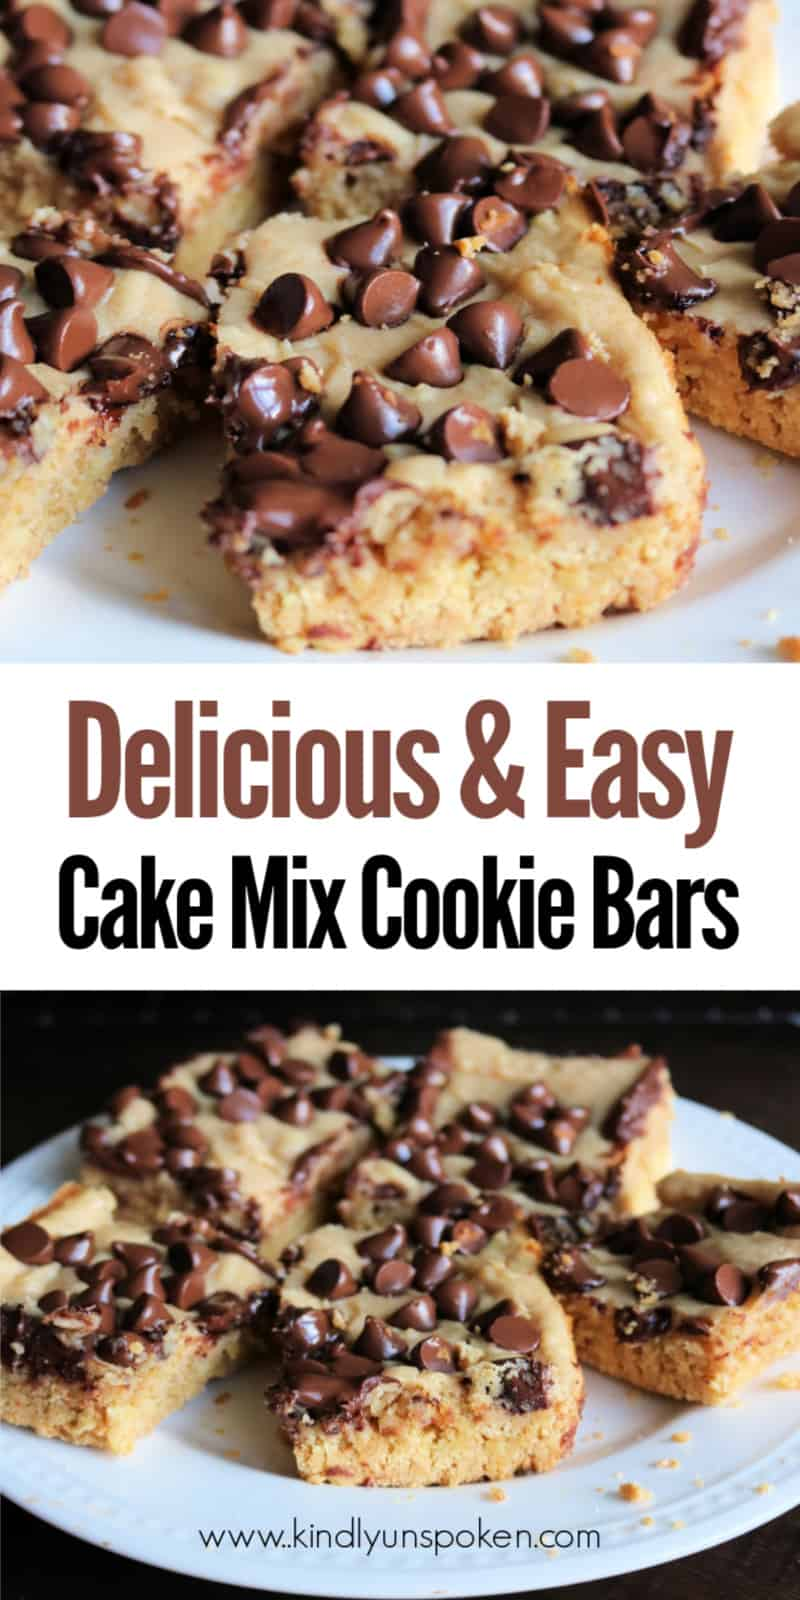 Craving peanut butter and chocolate? Try these soft, delicious, gooey peanut butter chocolate chip bars! These cake mix cookie bars are made in a 13x9 pan using a yellow cake mix, creamy peanut butter, cream cheese, and are topped with semi-sweet chocolate chips. Even better these chocolate chip bars bake in less than 30 minutes! #peanutbutterbars #chocolatechipbars #cookiebars #cakemixbars